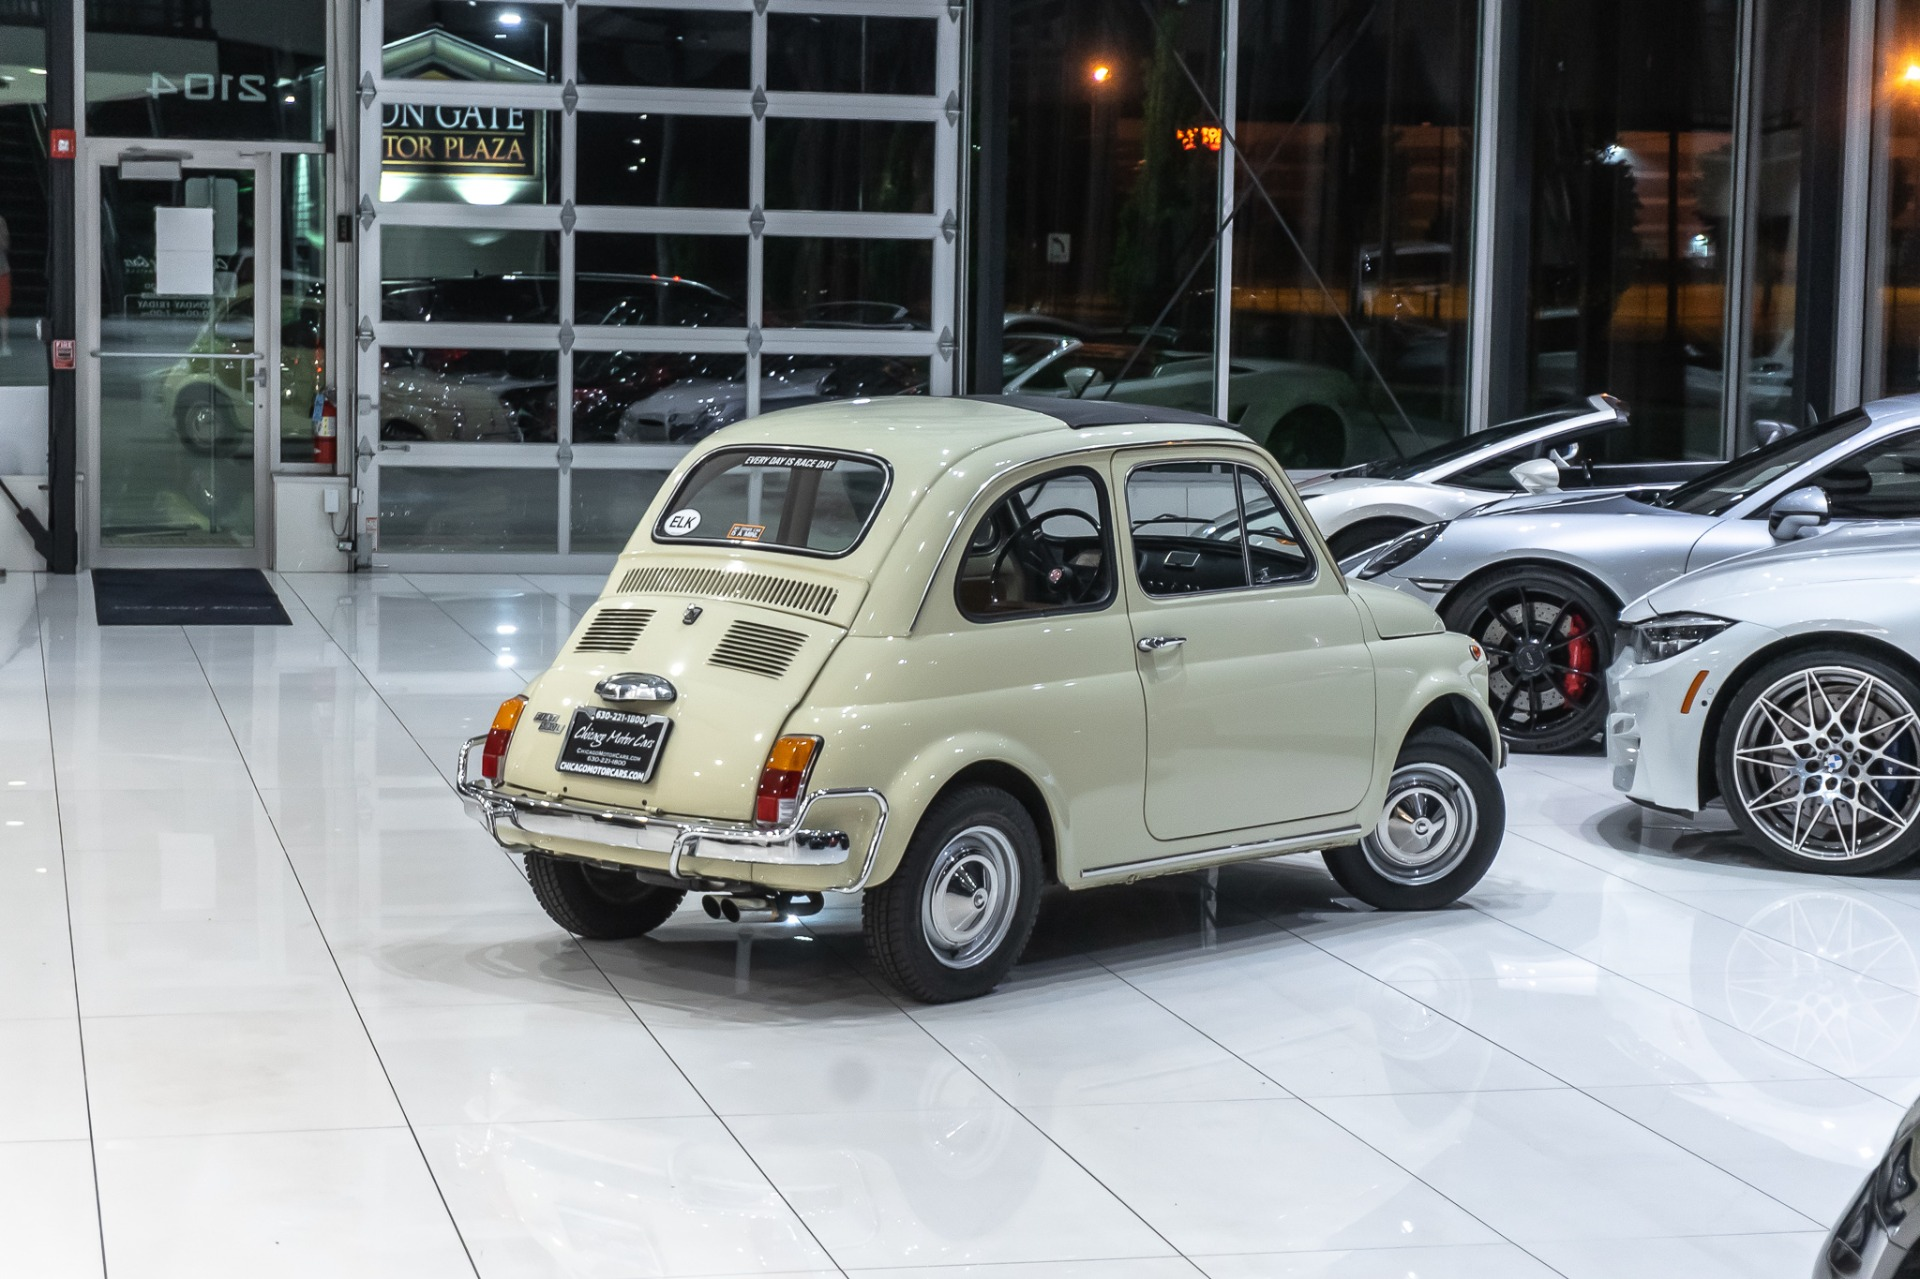 Used-1972-Fiat-500L-FULLY-RESTORED-RAGTOP-ROOF-LUSSO-PKG